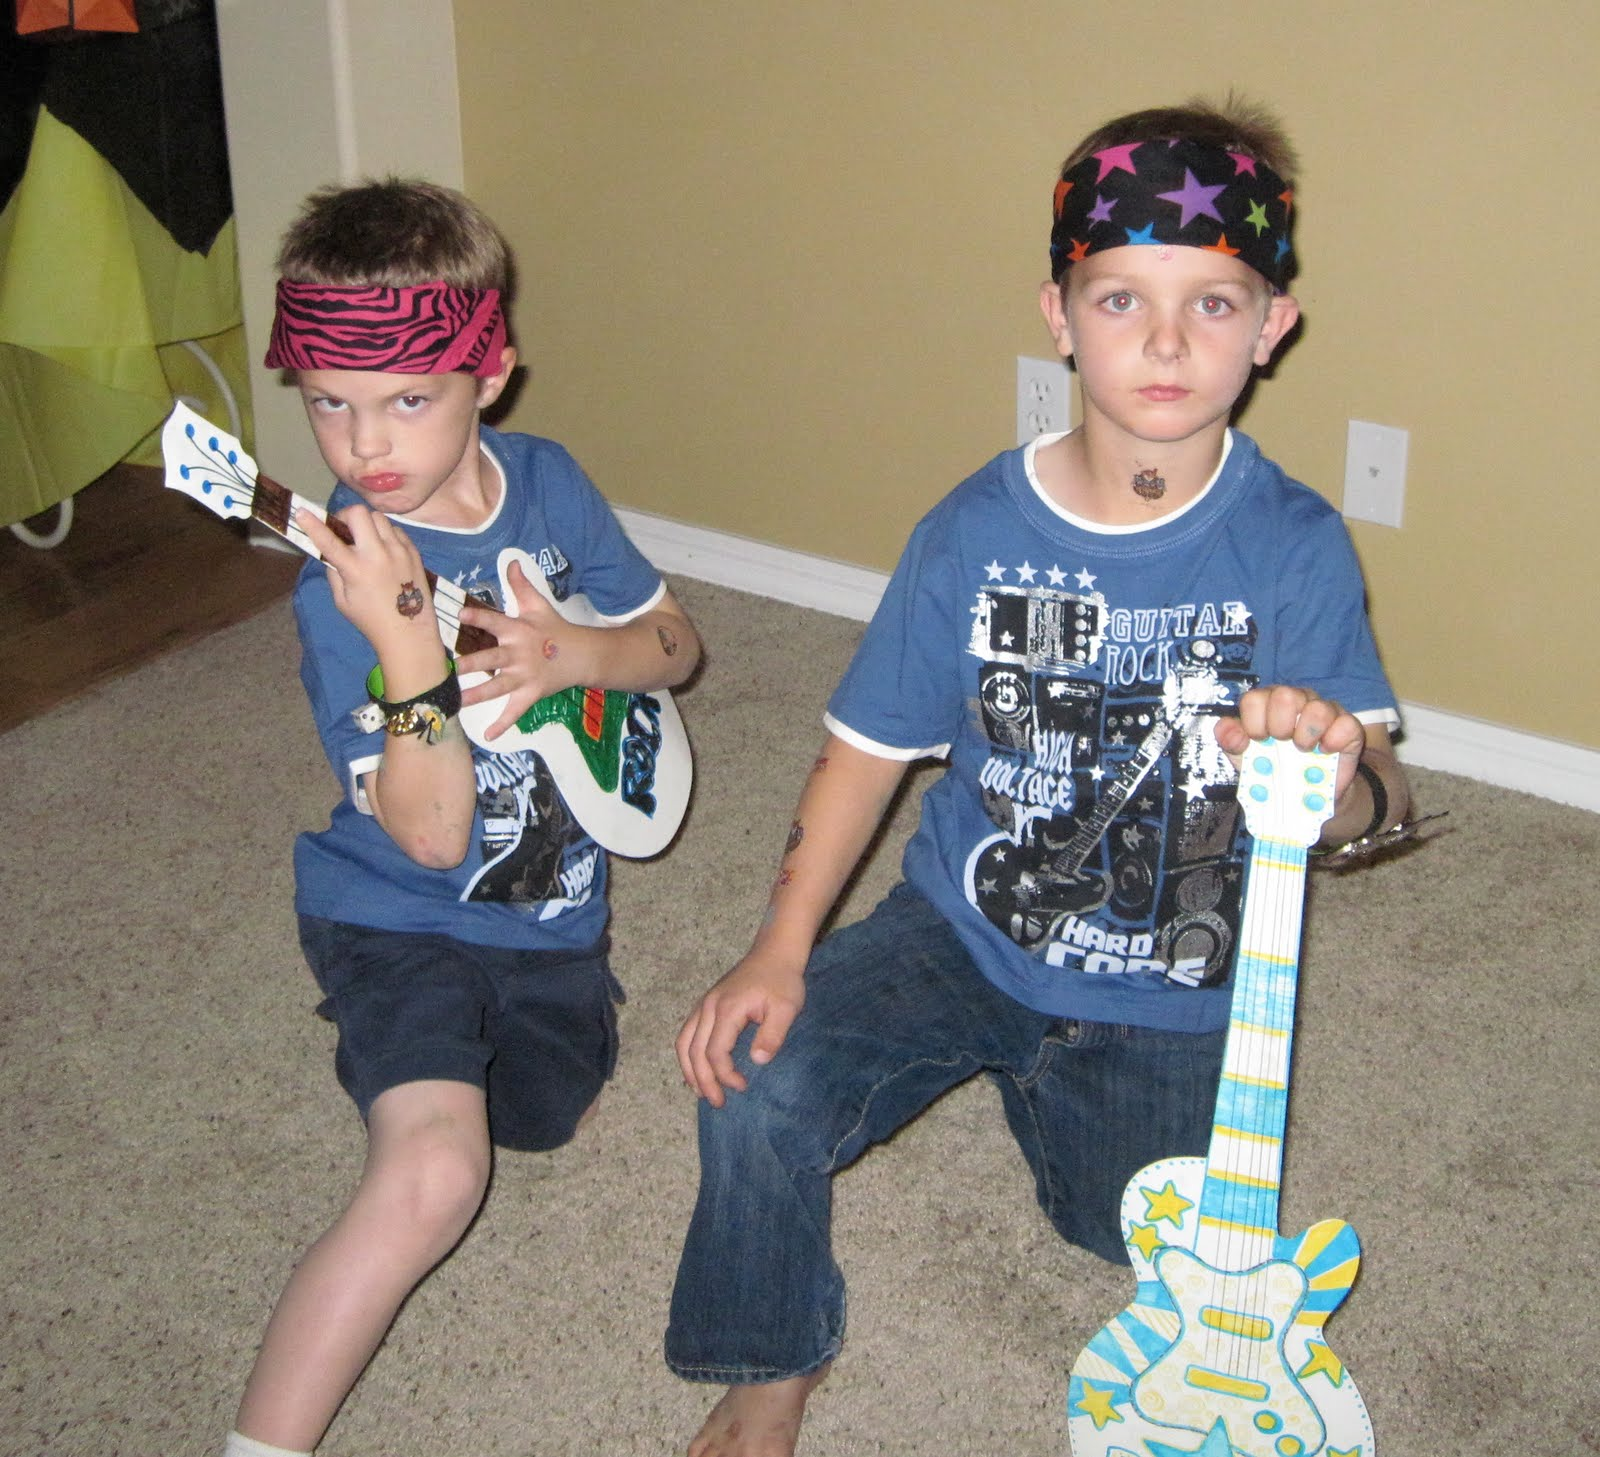 dd0d465e9 They were all given a rock n roll camp t-shirt to wear to the dance. A  selection of bandanas, tattoos, their guitars, and their rock star  wristbands turned ...